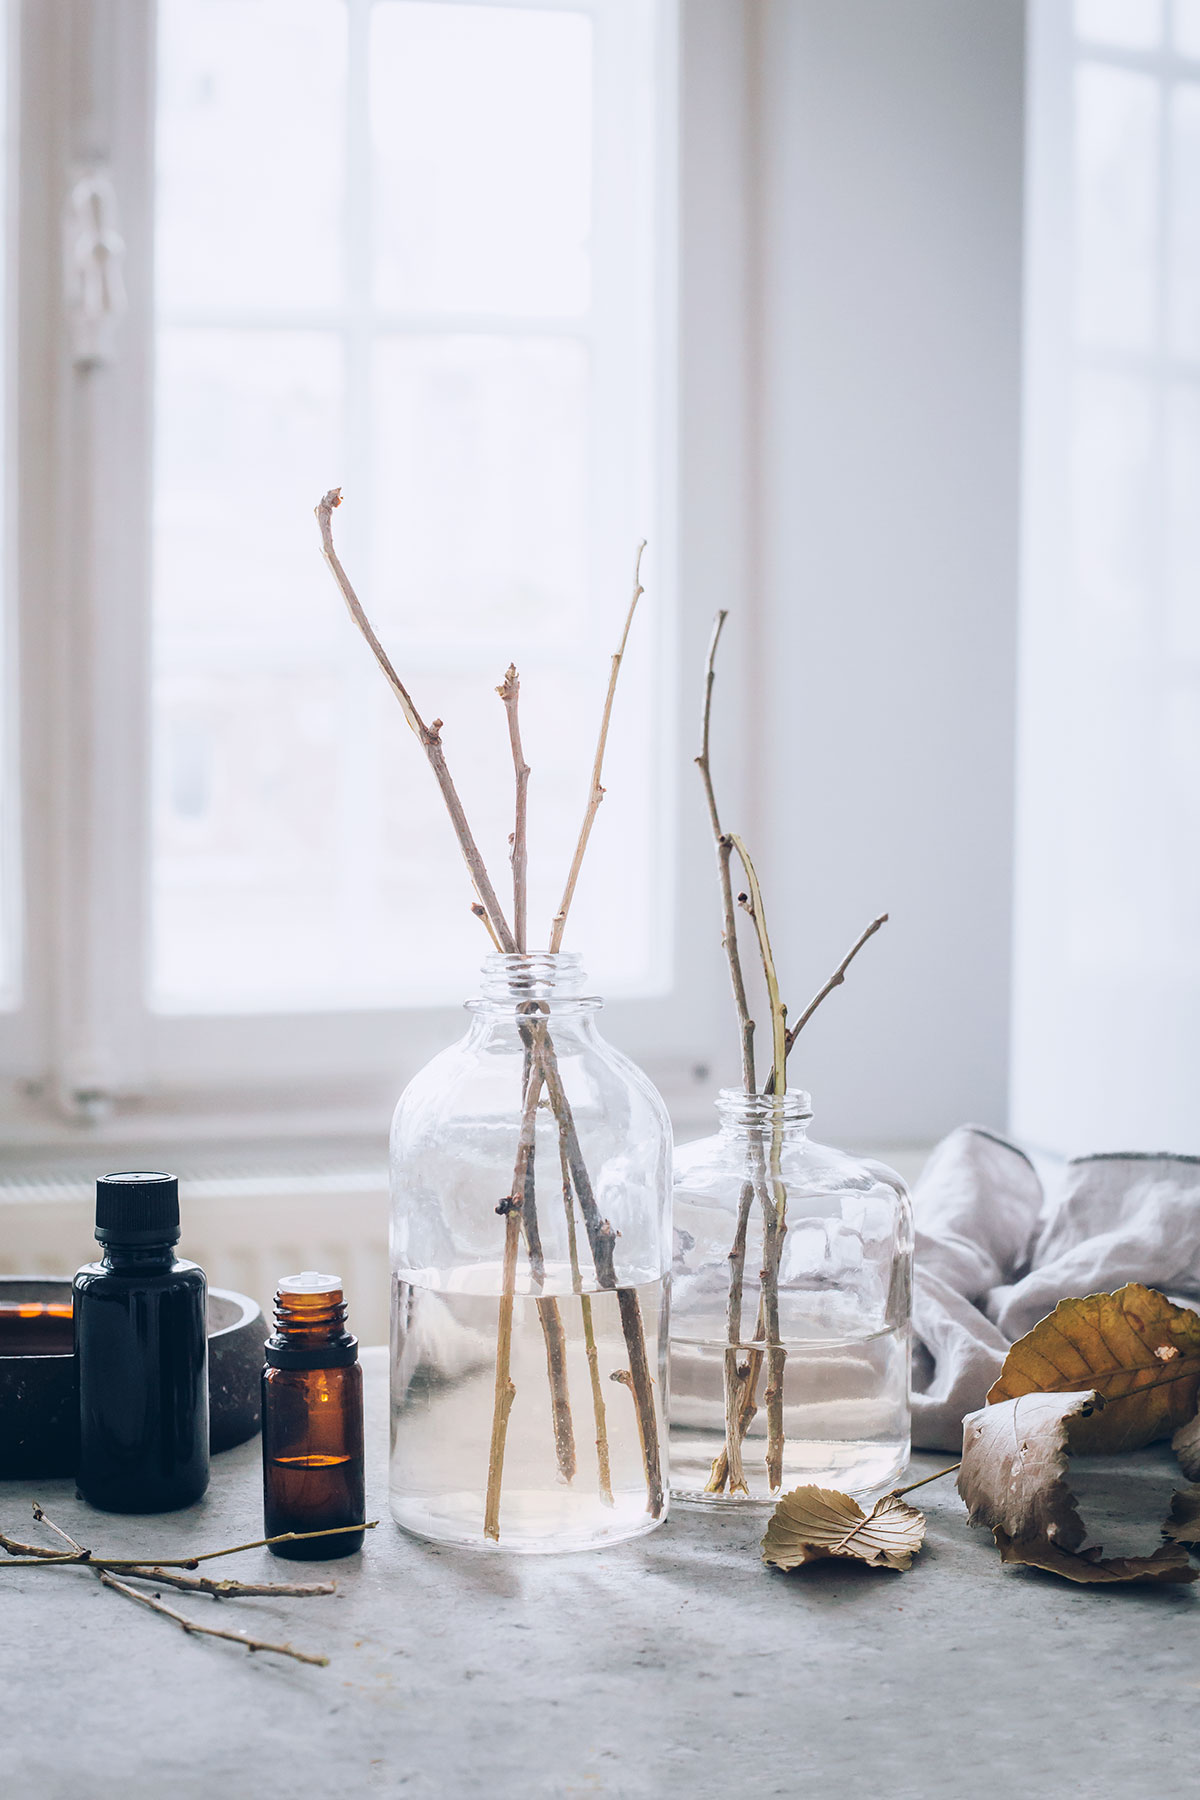 Dreamy Bedside DIY Reed Diffuser